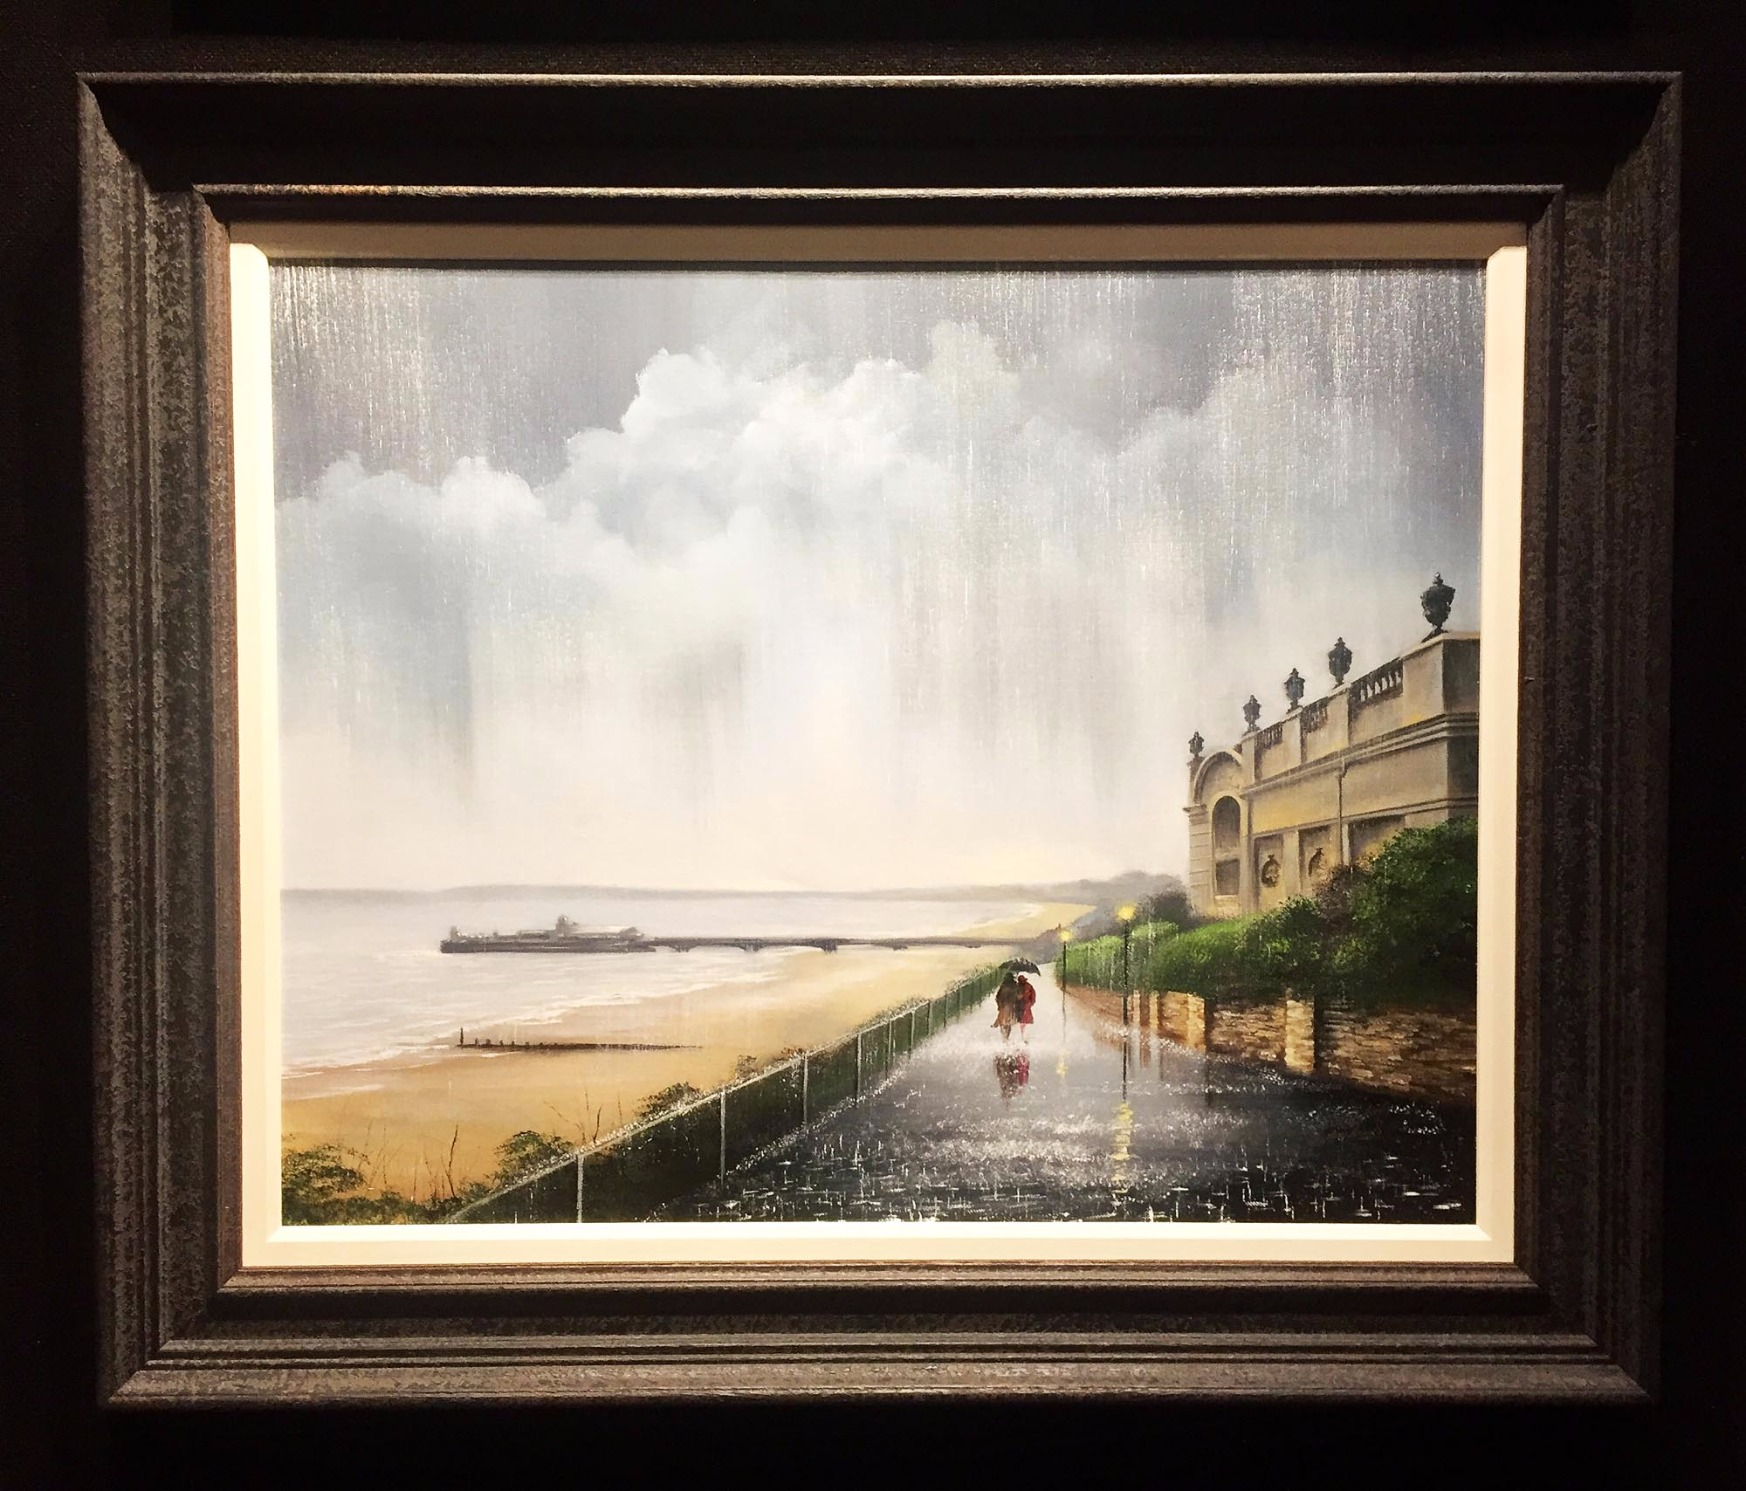 Promenade by Jeff Rowland